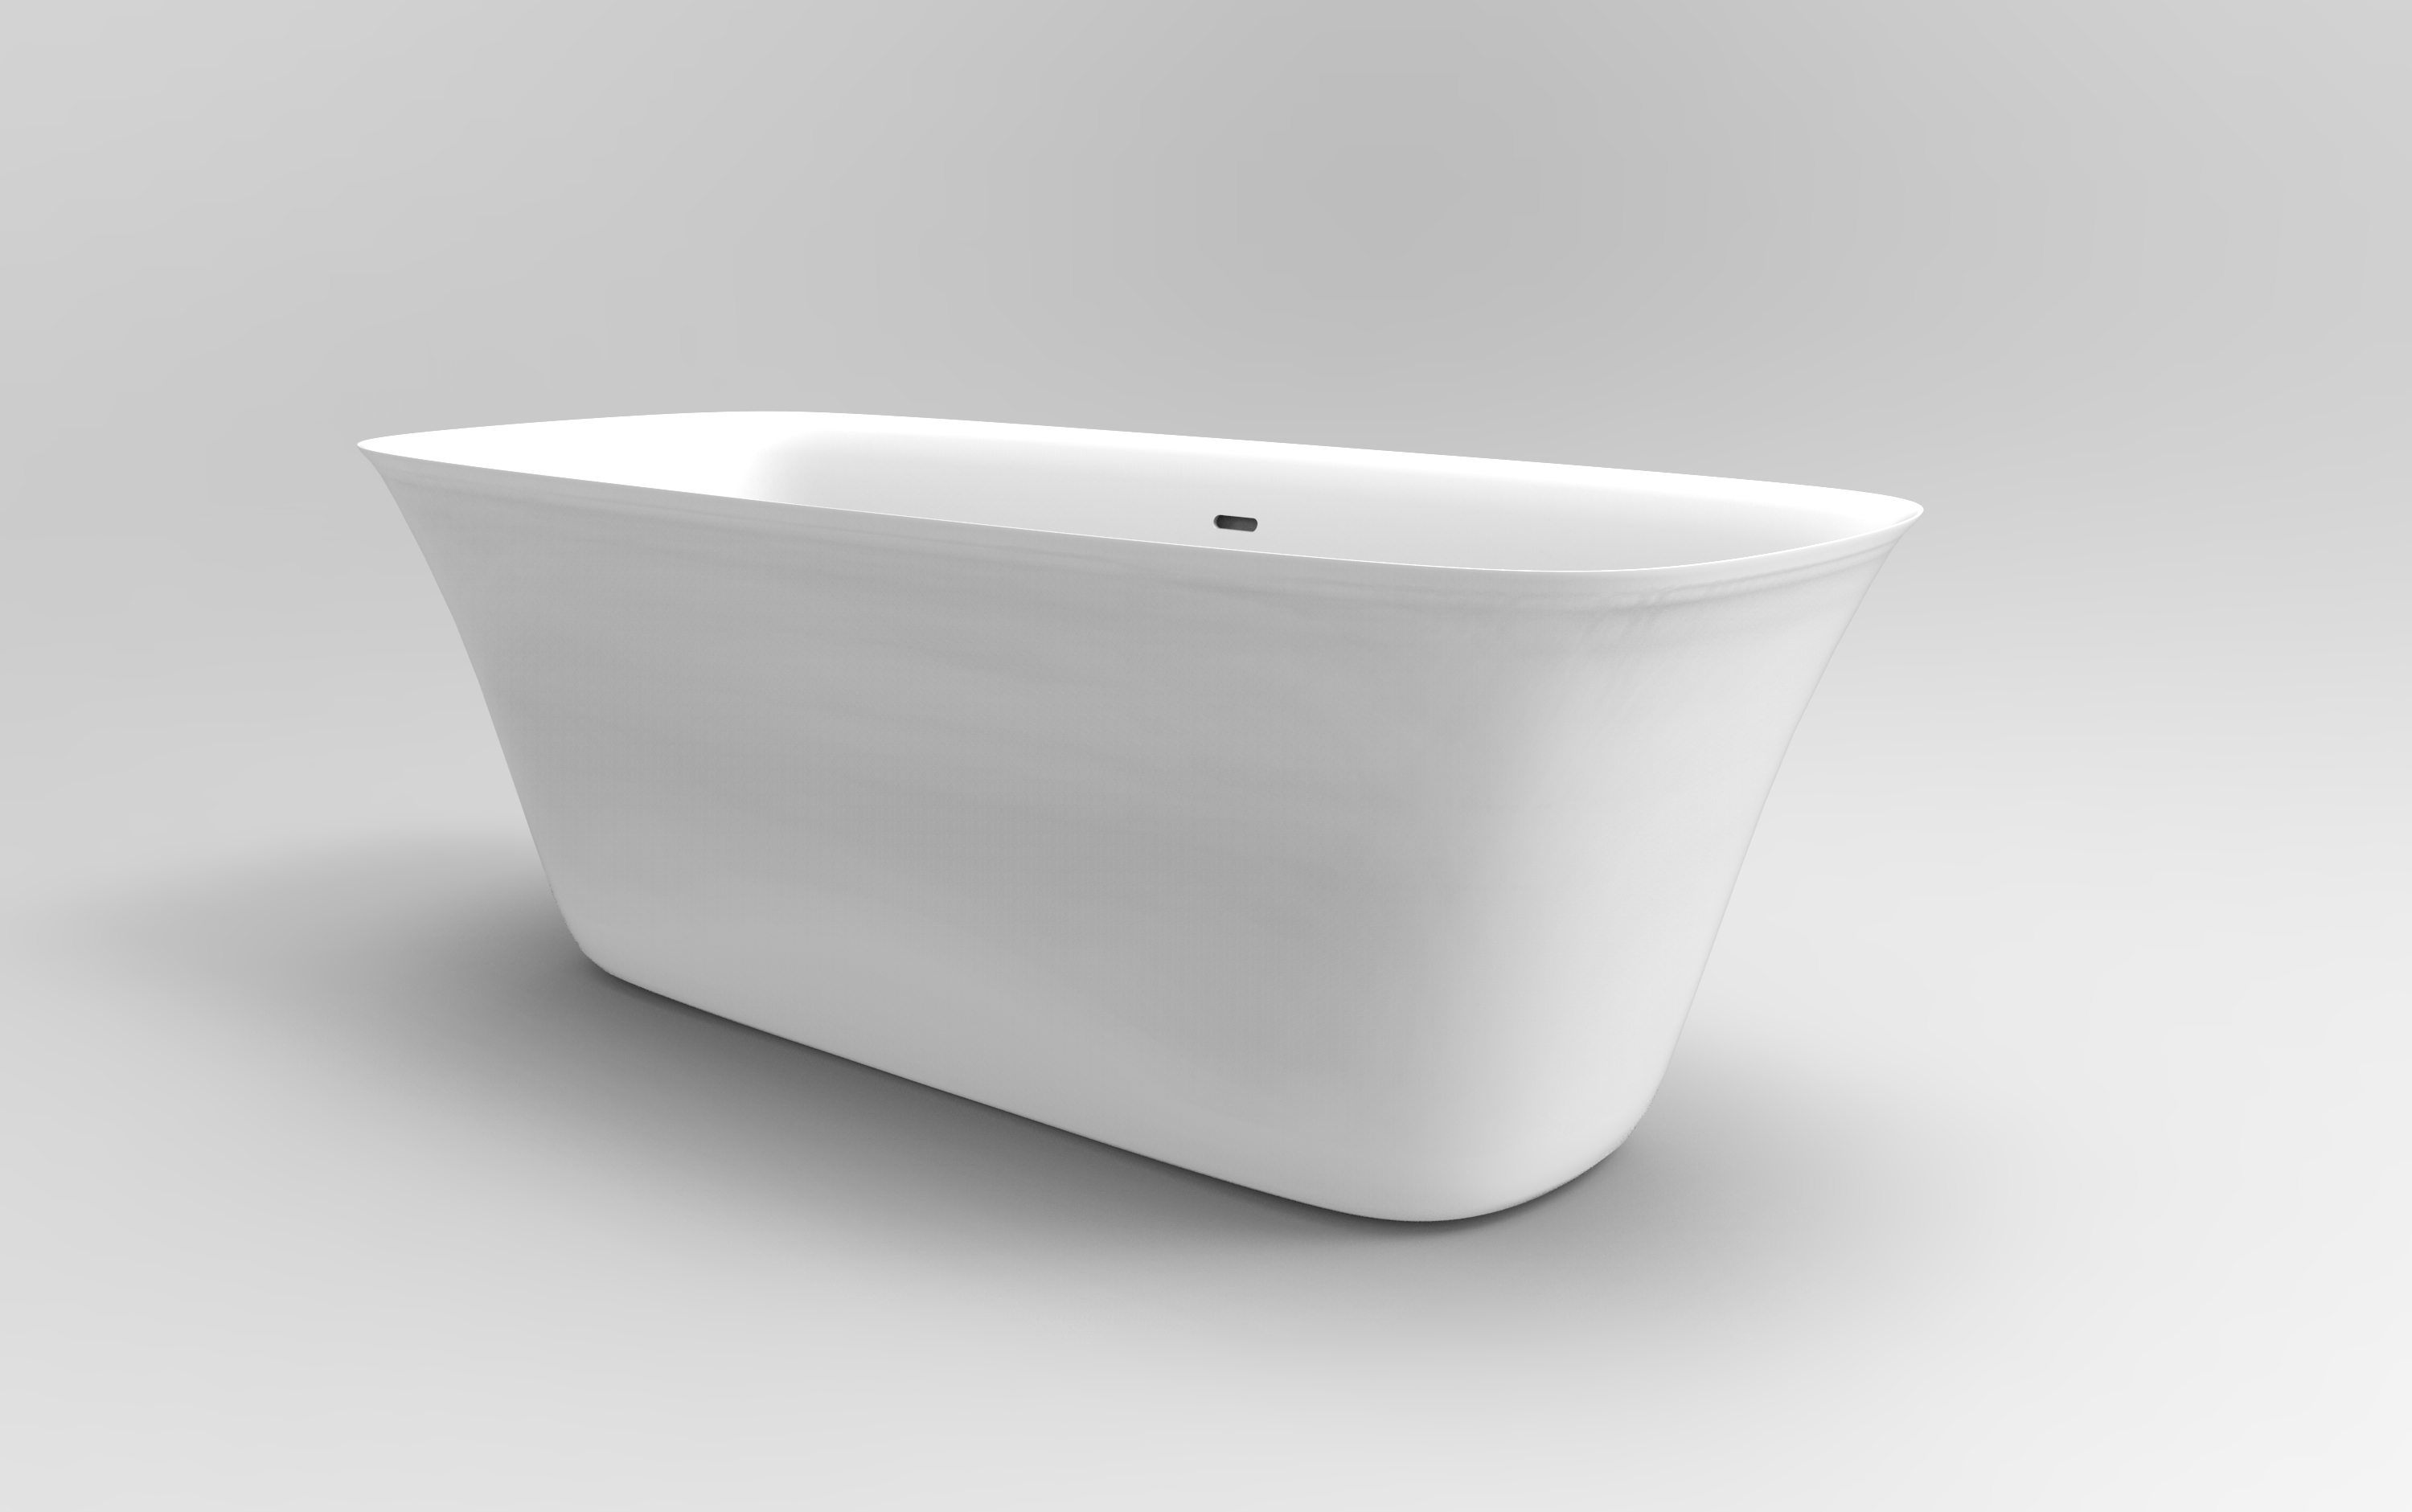 bowl bath tub